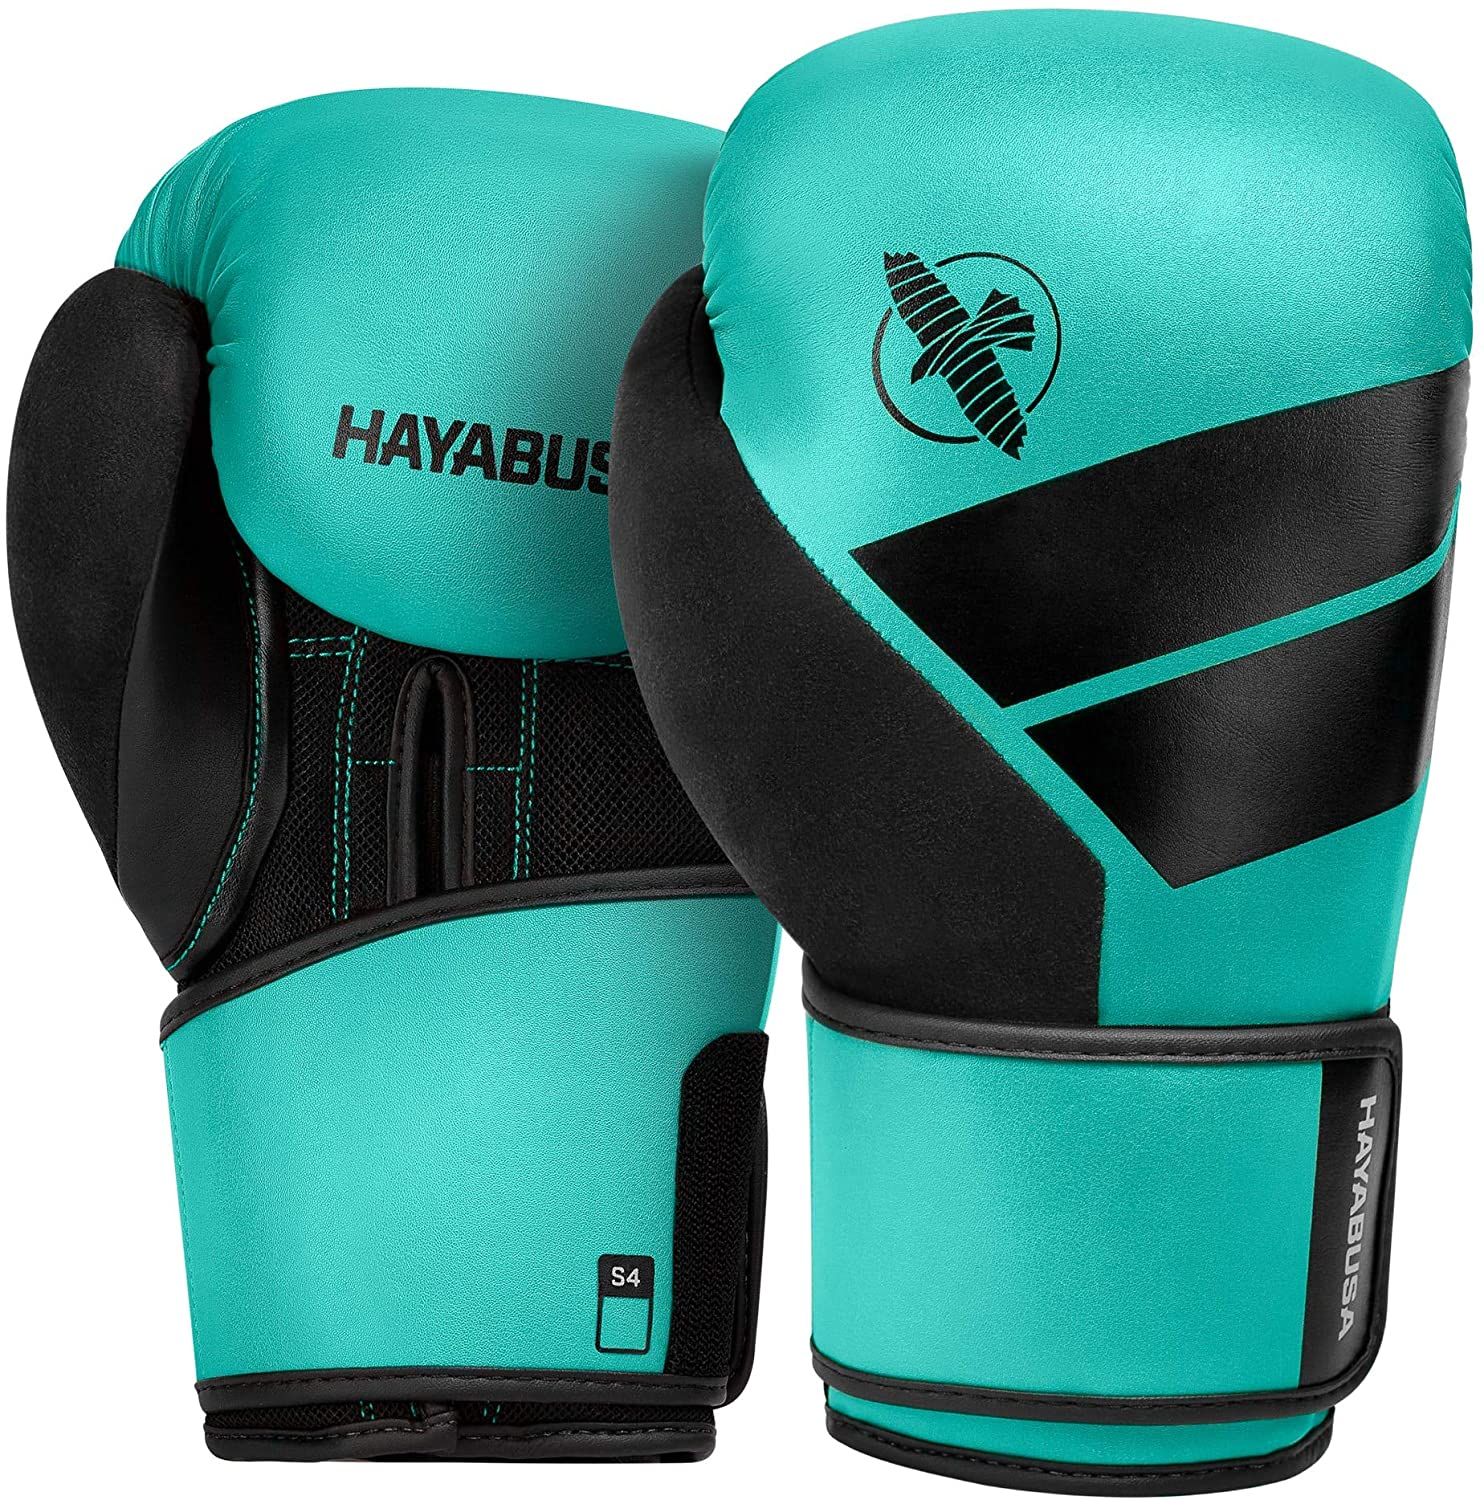 Hayabusa S4 Max 74% OFF Boxing Gloves Women Men Ranking TOP10 and for